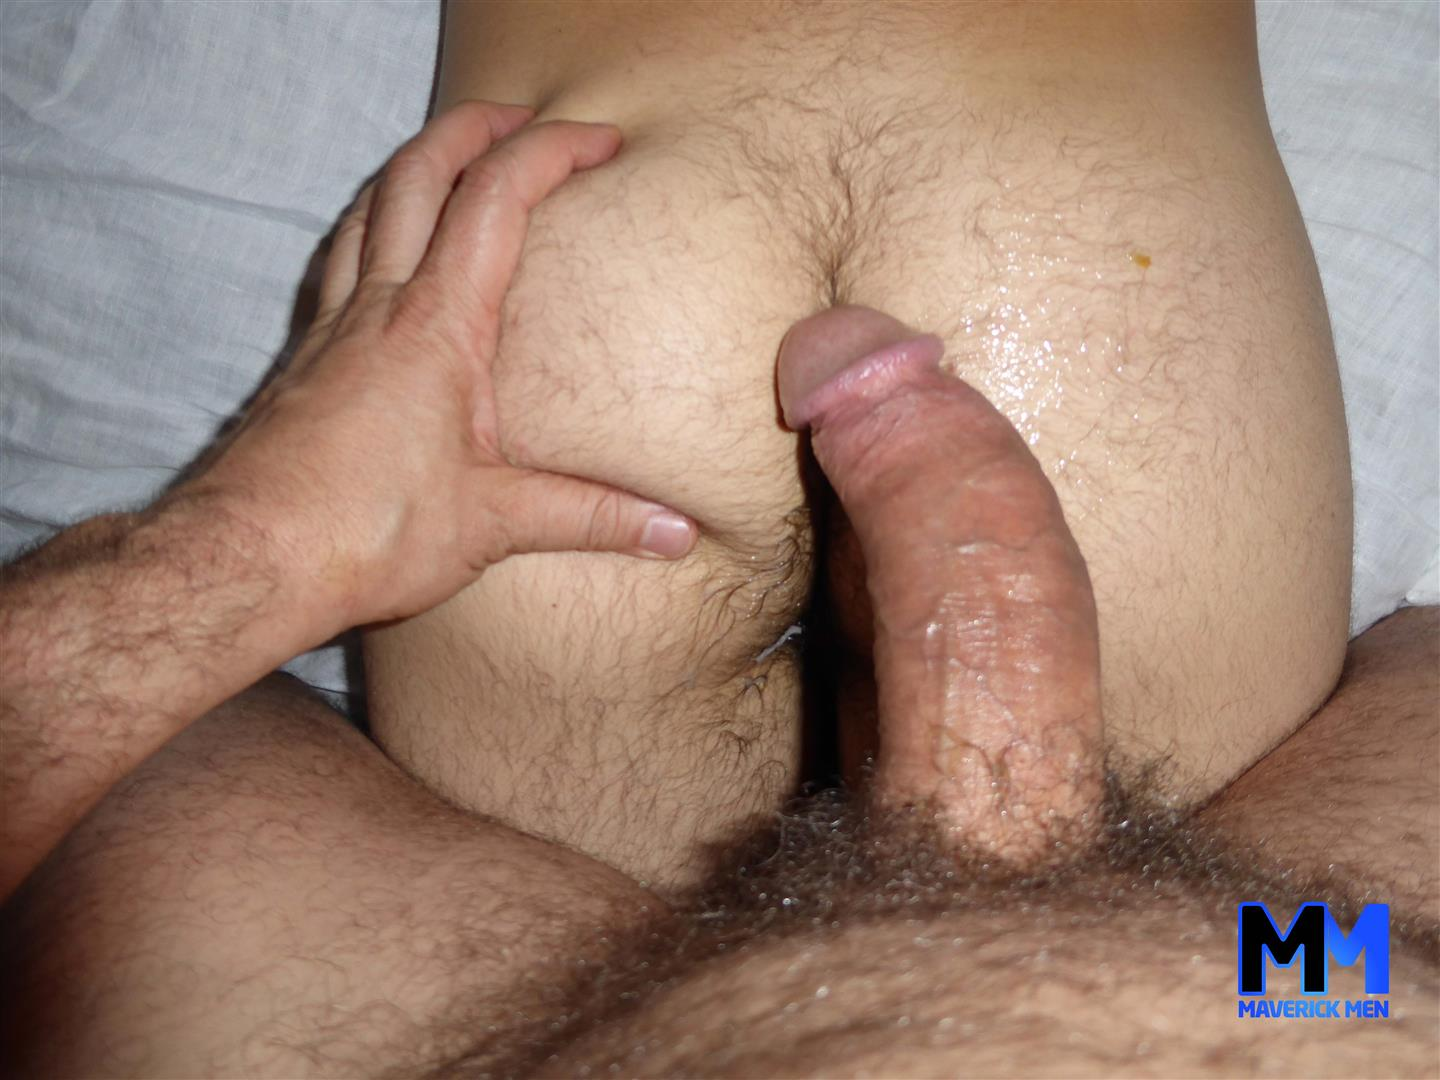 Maverick-Men-Joey-Twink-With-Hairy-Hole-Getting-Barebacked-2 The Maverick Men Cream A Young Guys Hairy Ass